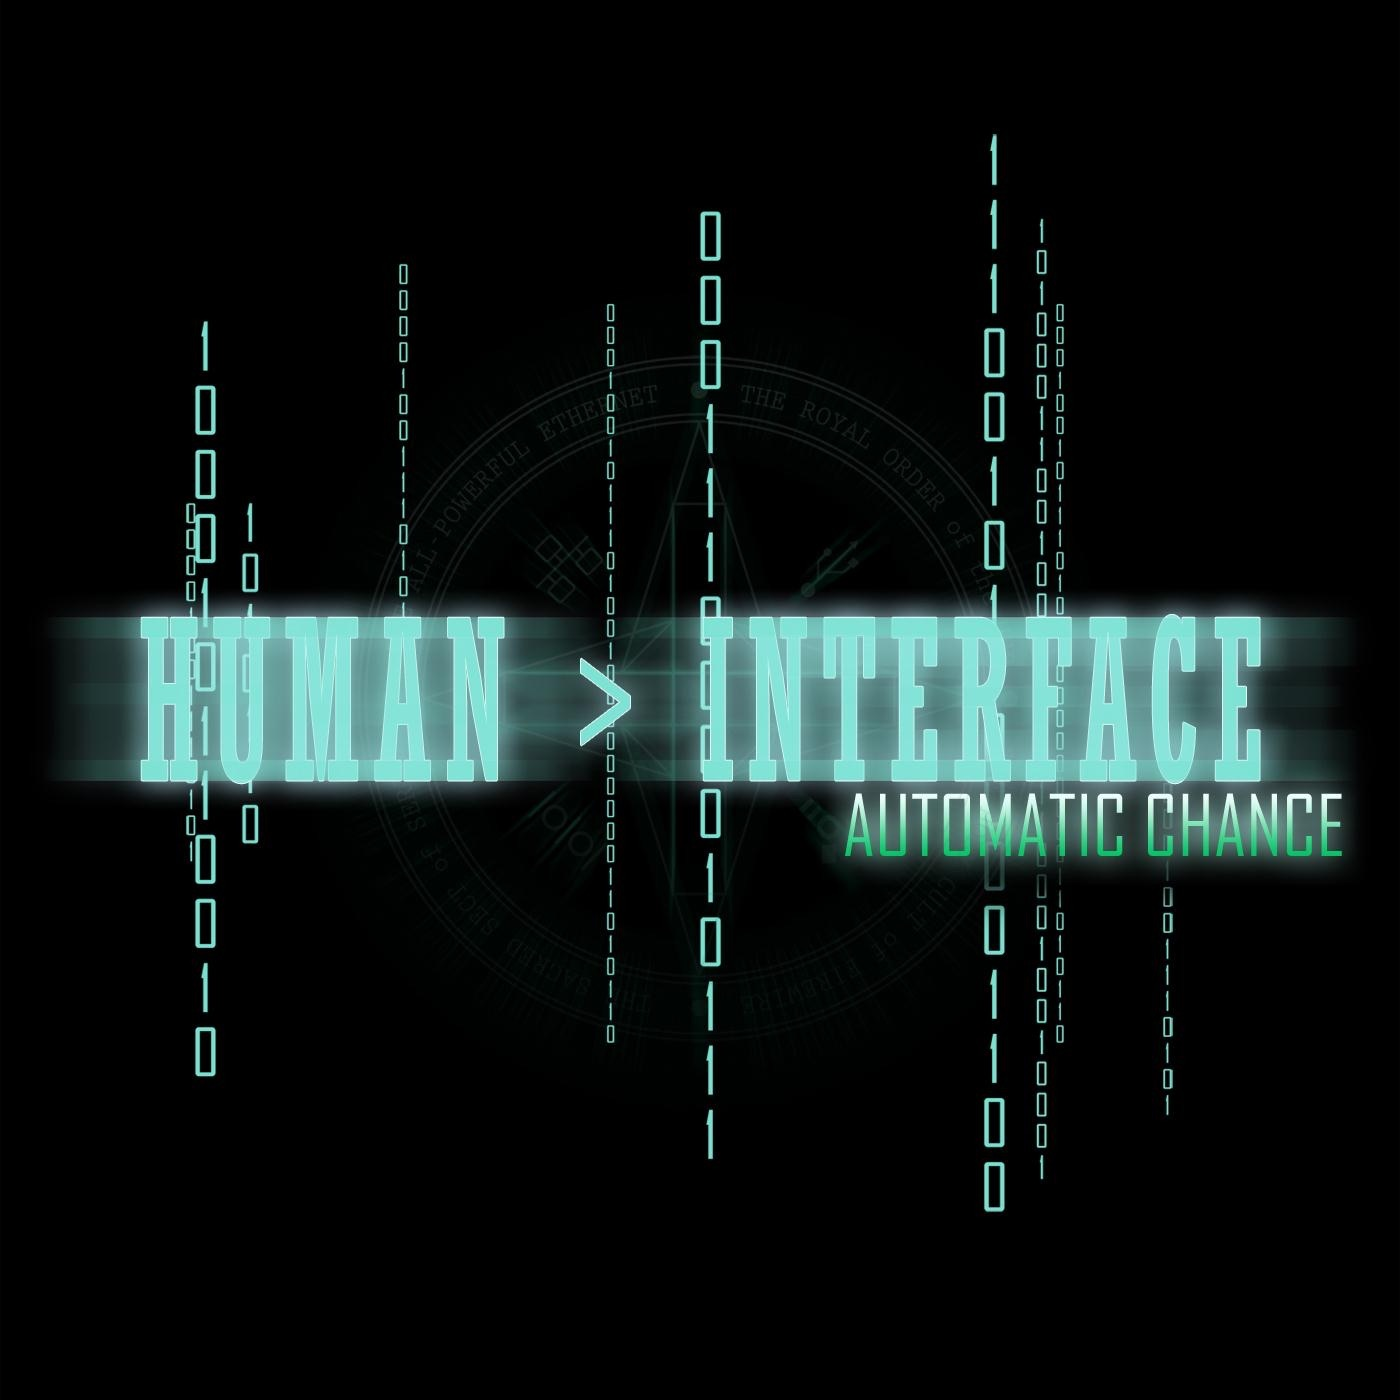 Automatic Chance - Critical Sector